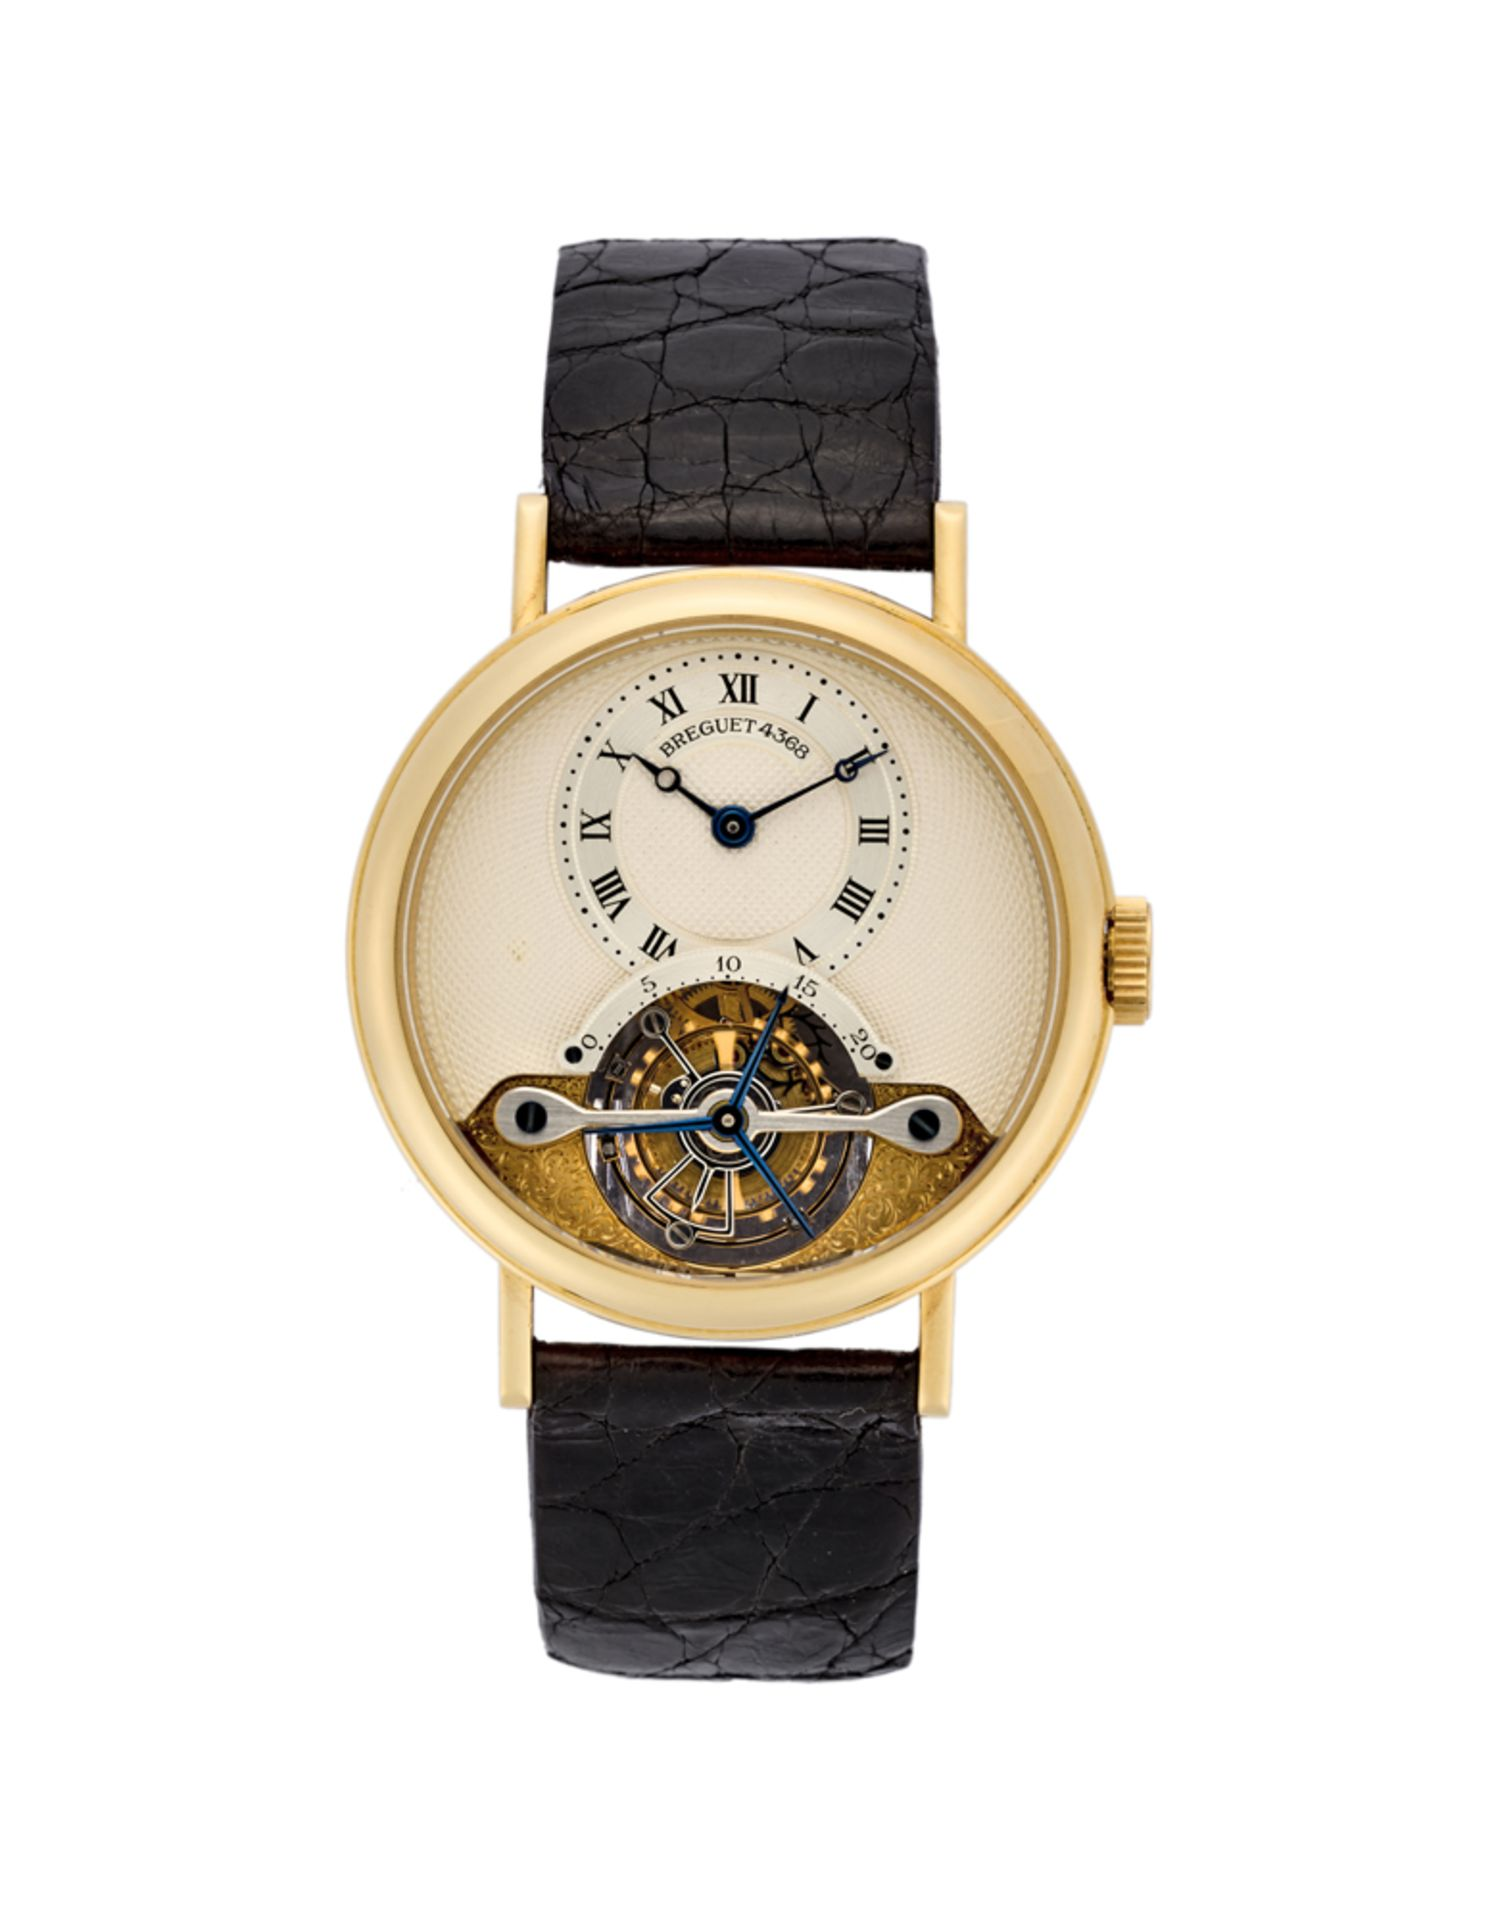 BREGUETGent's 18K gold wristwatch1990sDial, movement and case signedManual wind movement with